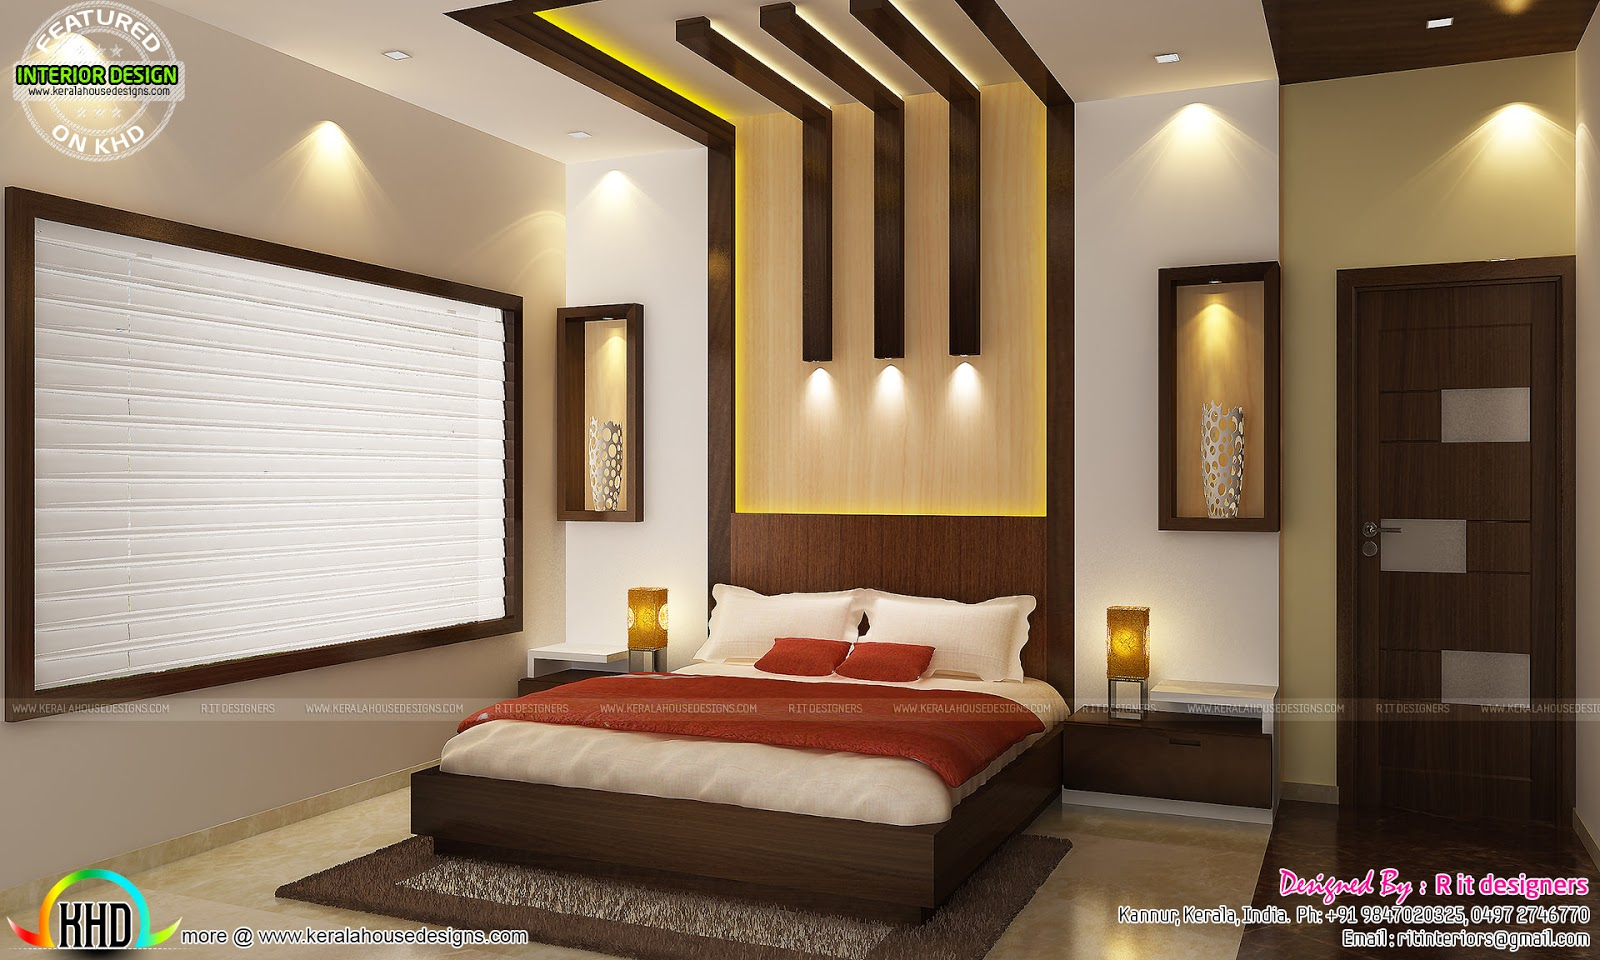 Kitchen living bedroom dining interior decor kerala for House interior design bedroom